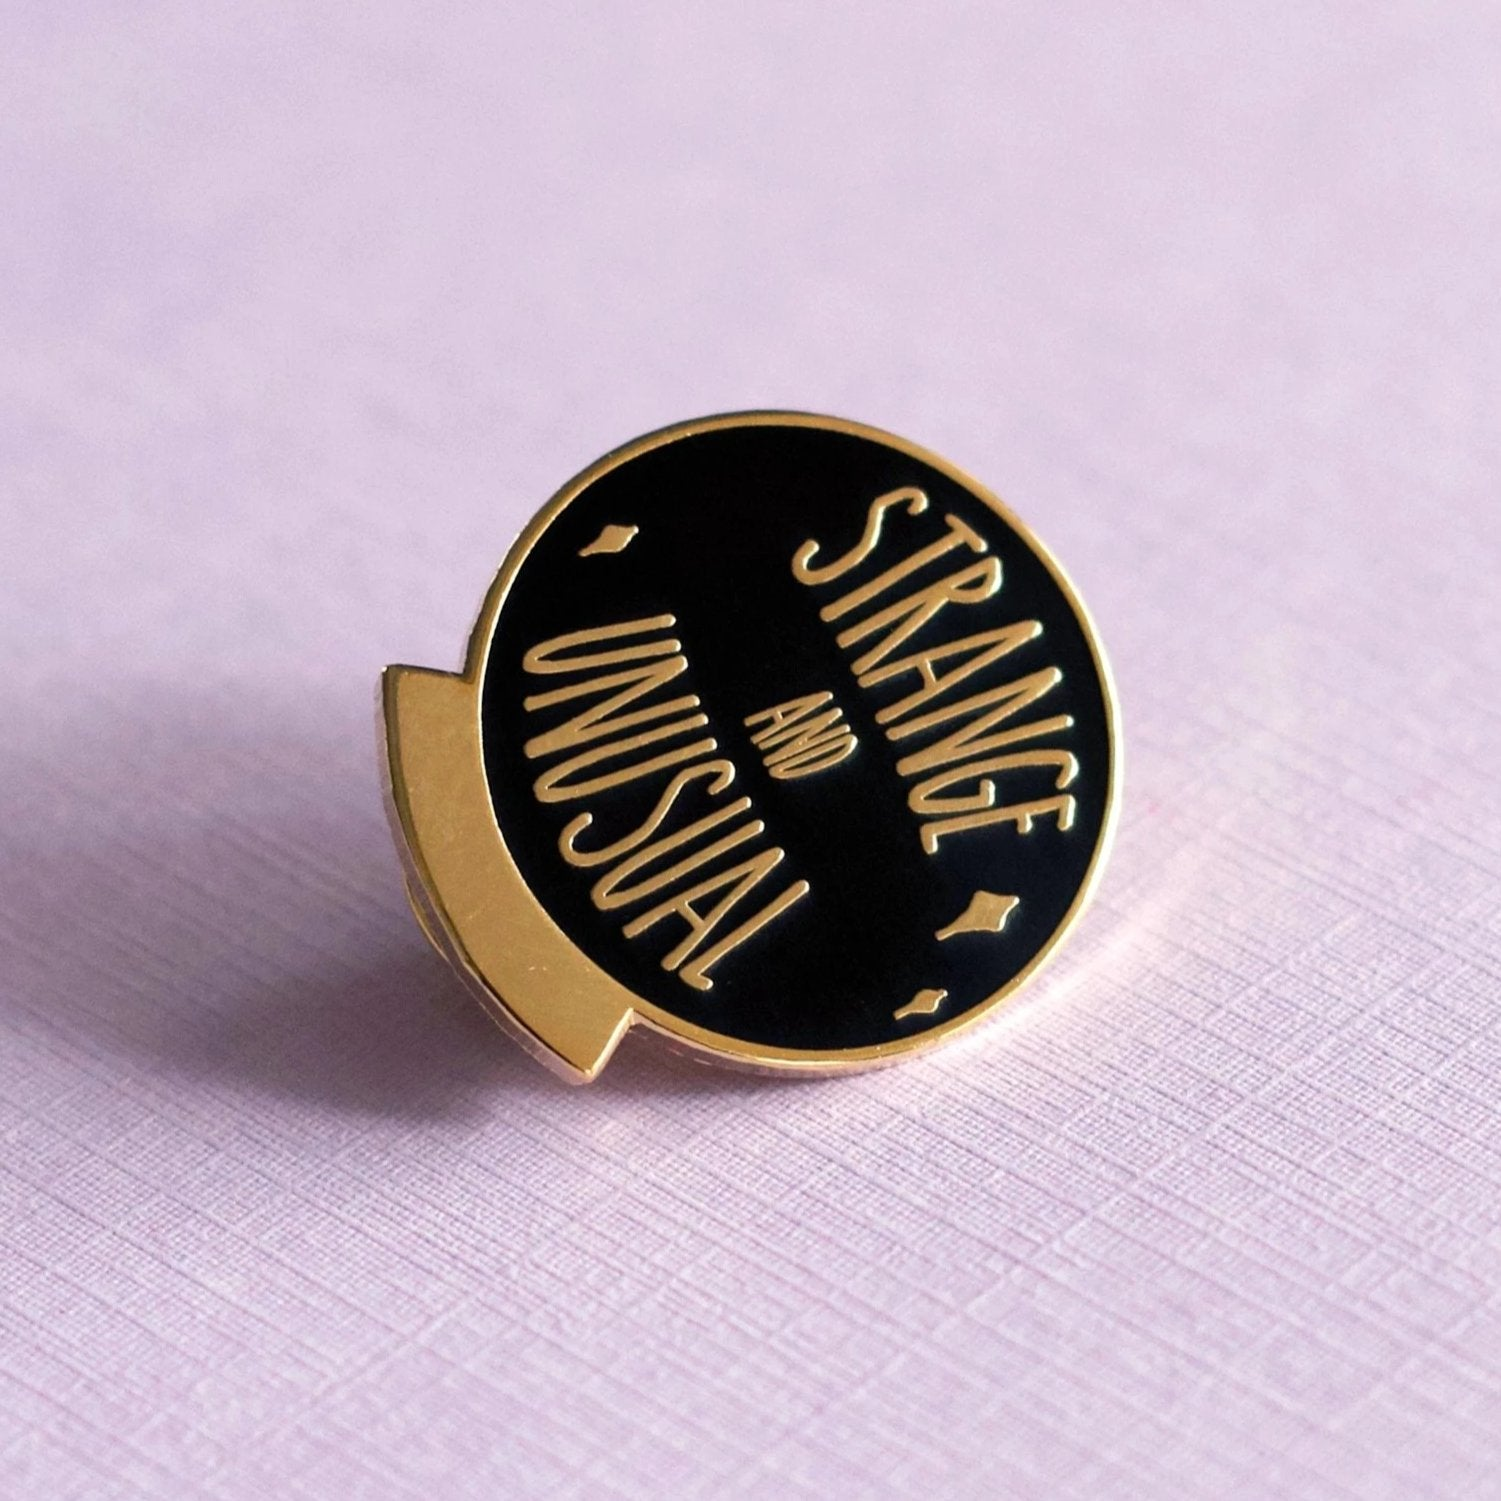 Strange and Unusual Enamel Pin